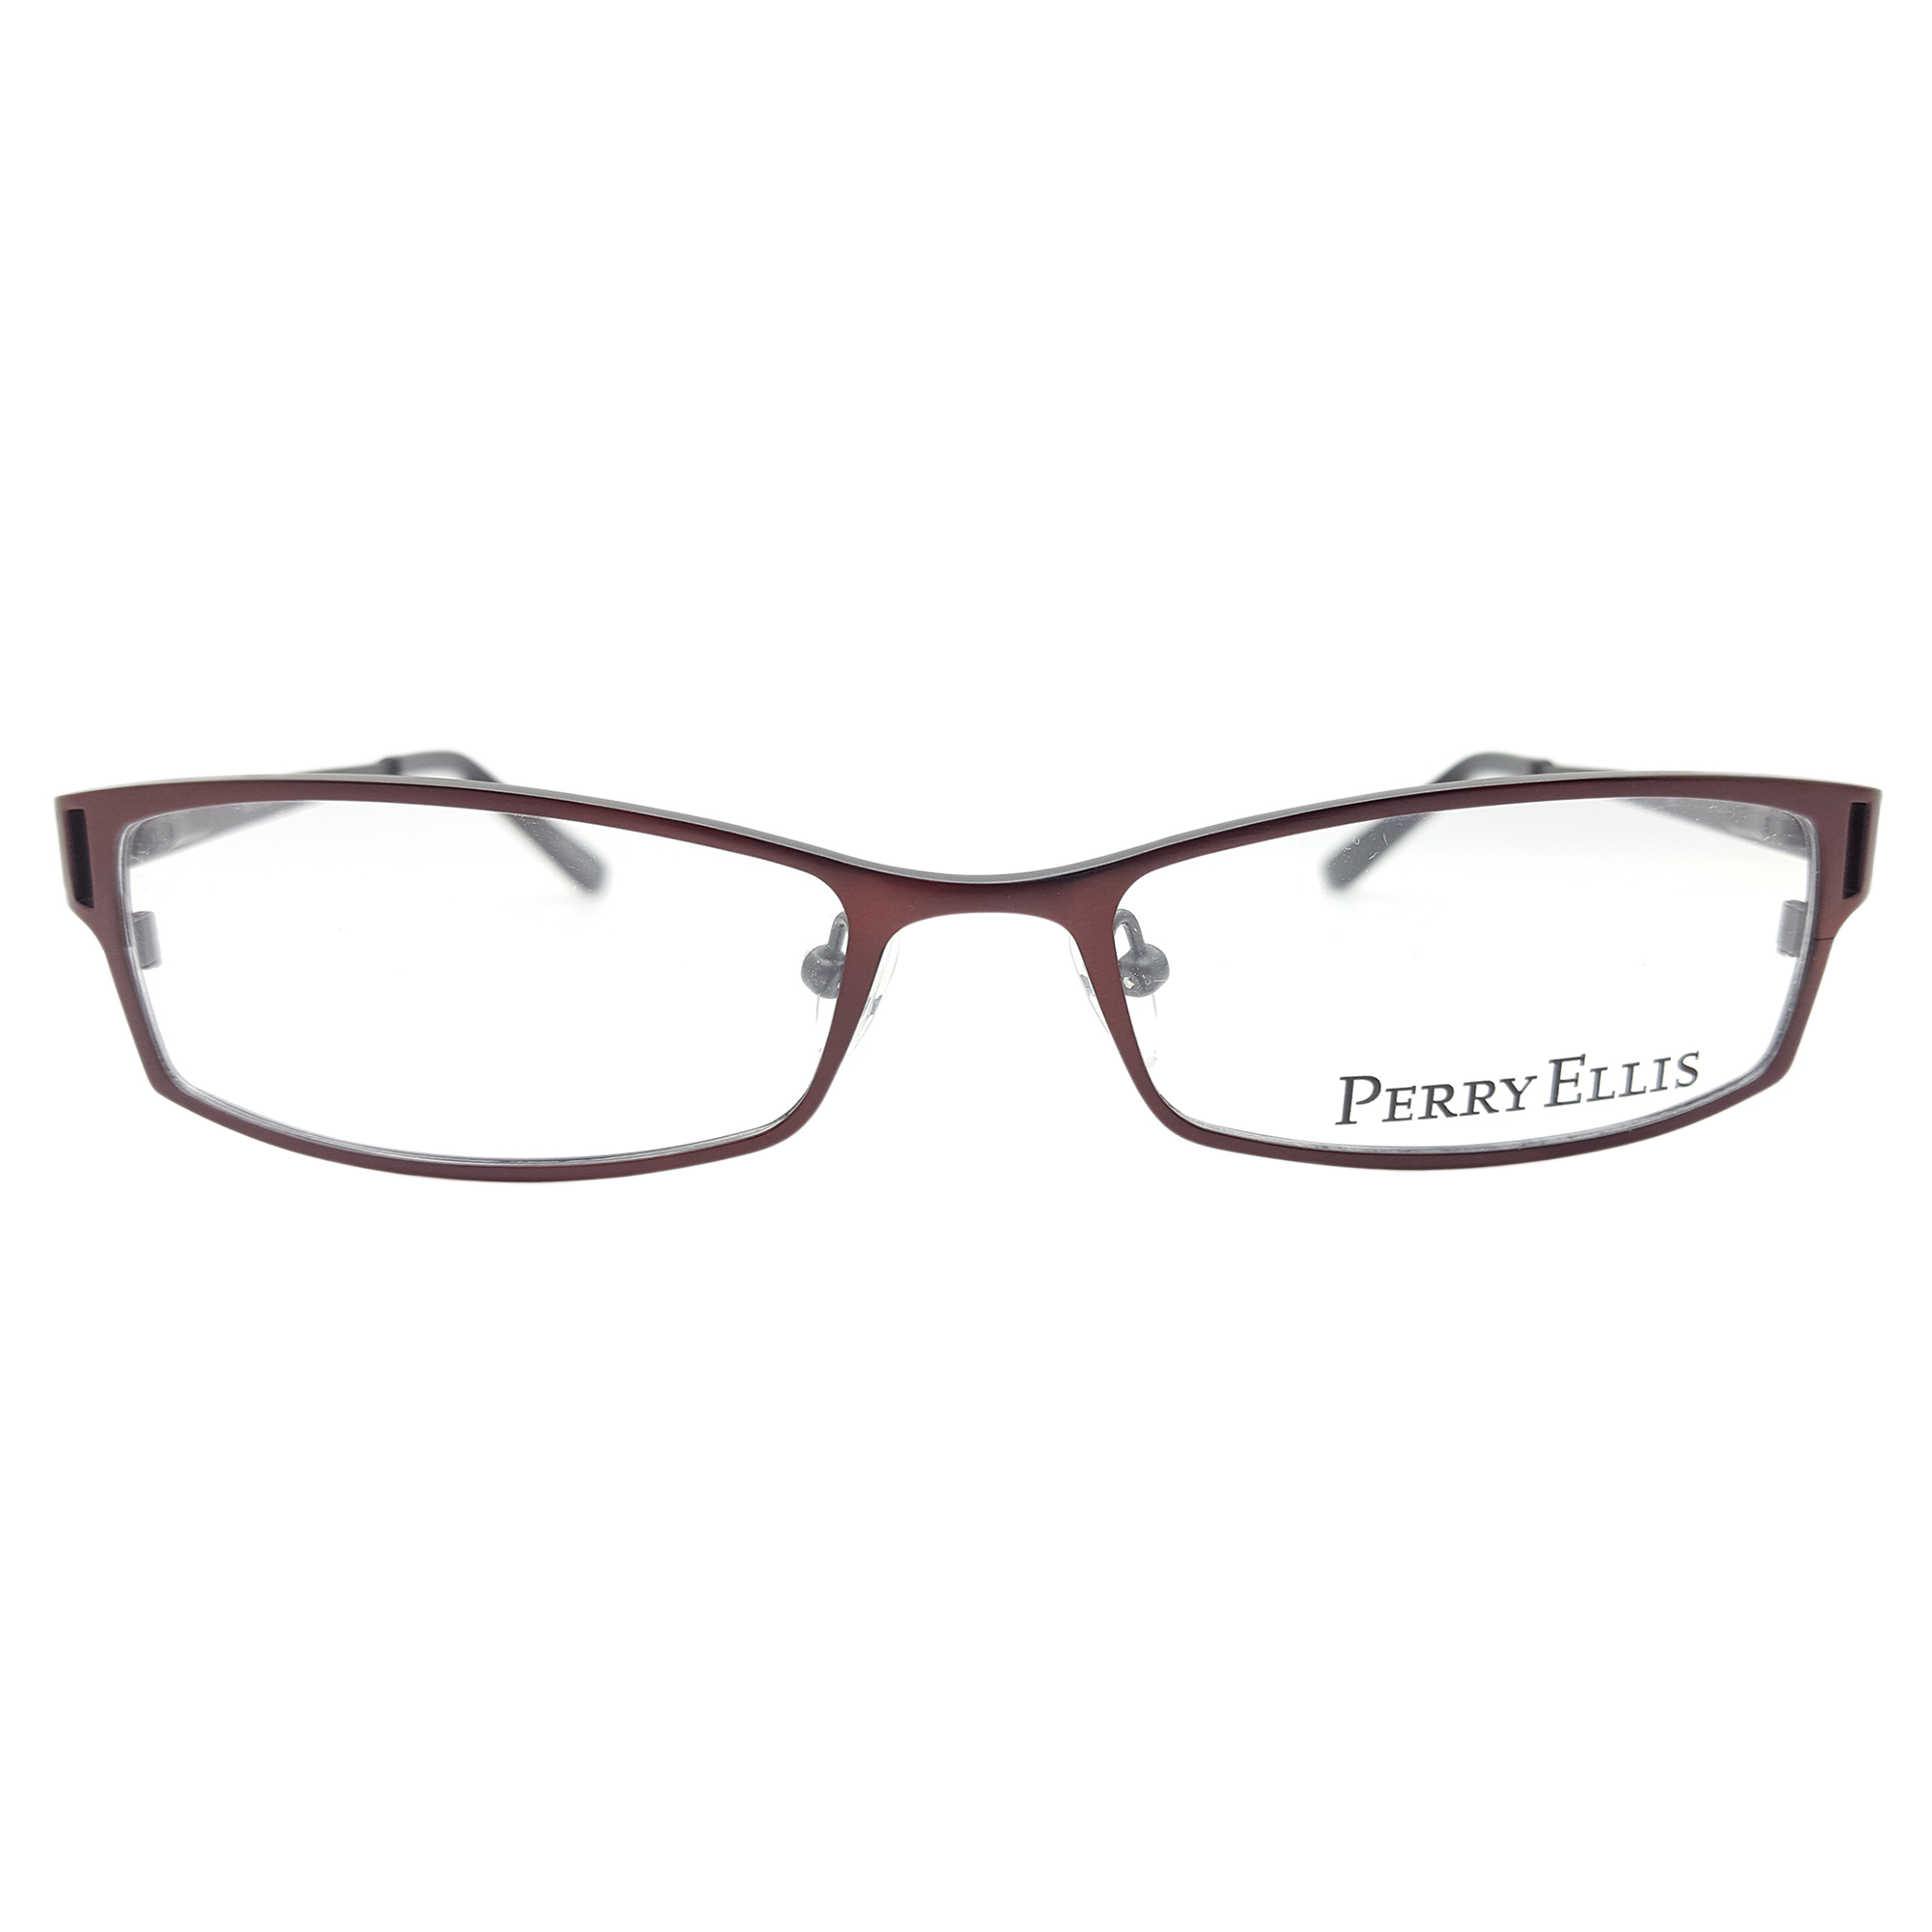 Perry Ellis Men's PE233 Eyeglasses Prescription Frames, (Brwn/Blk, 53-17-135) - Walmart.com | Tuggl